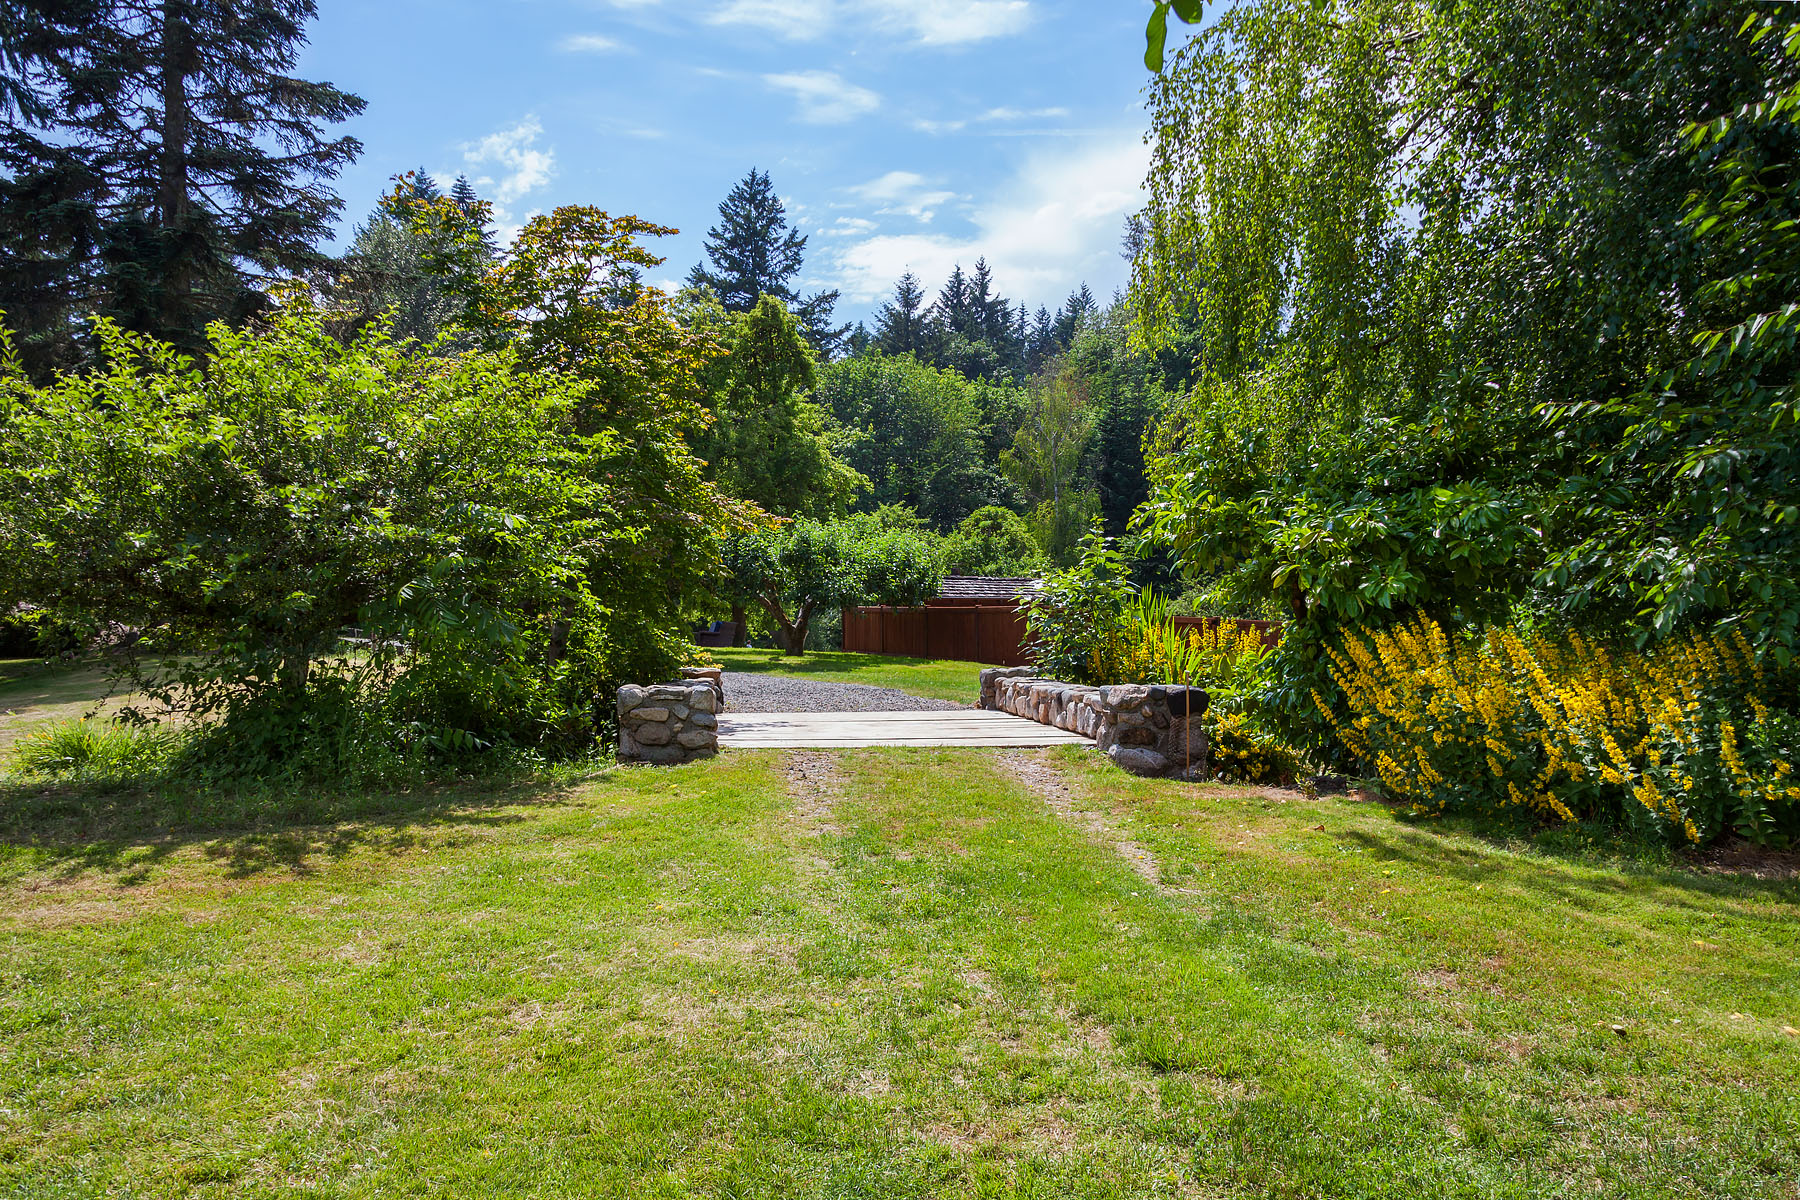 Additional photo for property listing at 14.7 Acres of Peaceful, Country Life Living in the Heart of Woodinville 17002 NE 172nd Place Woodinville, Washington 98072 United States